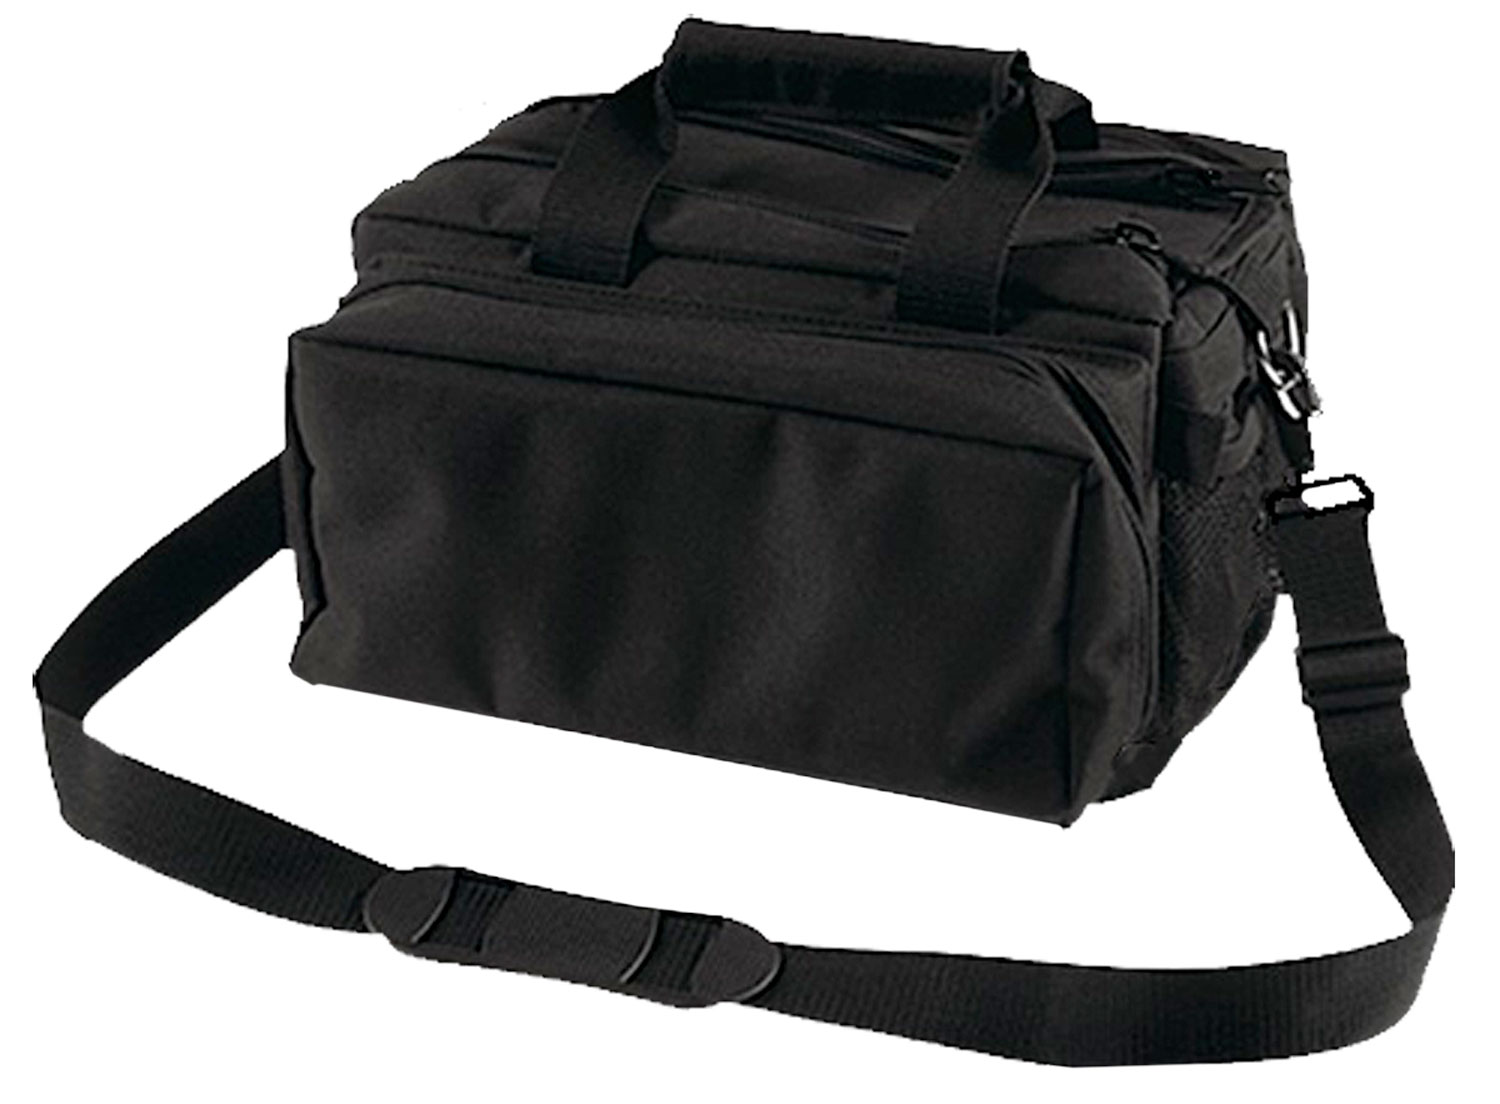 Bulldog BD910 Deluxe Range Bag with Strap Nylon 13